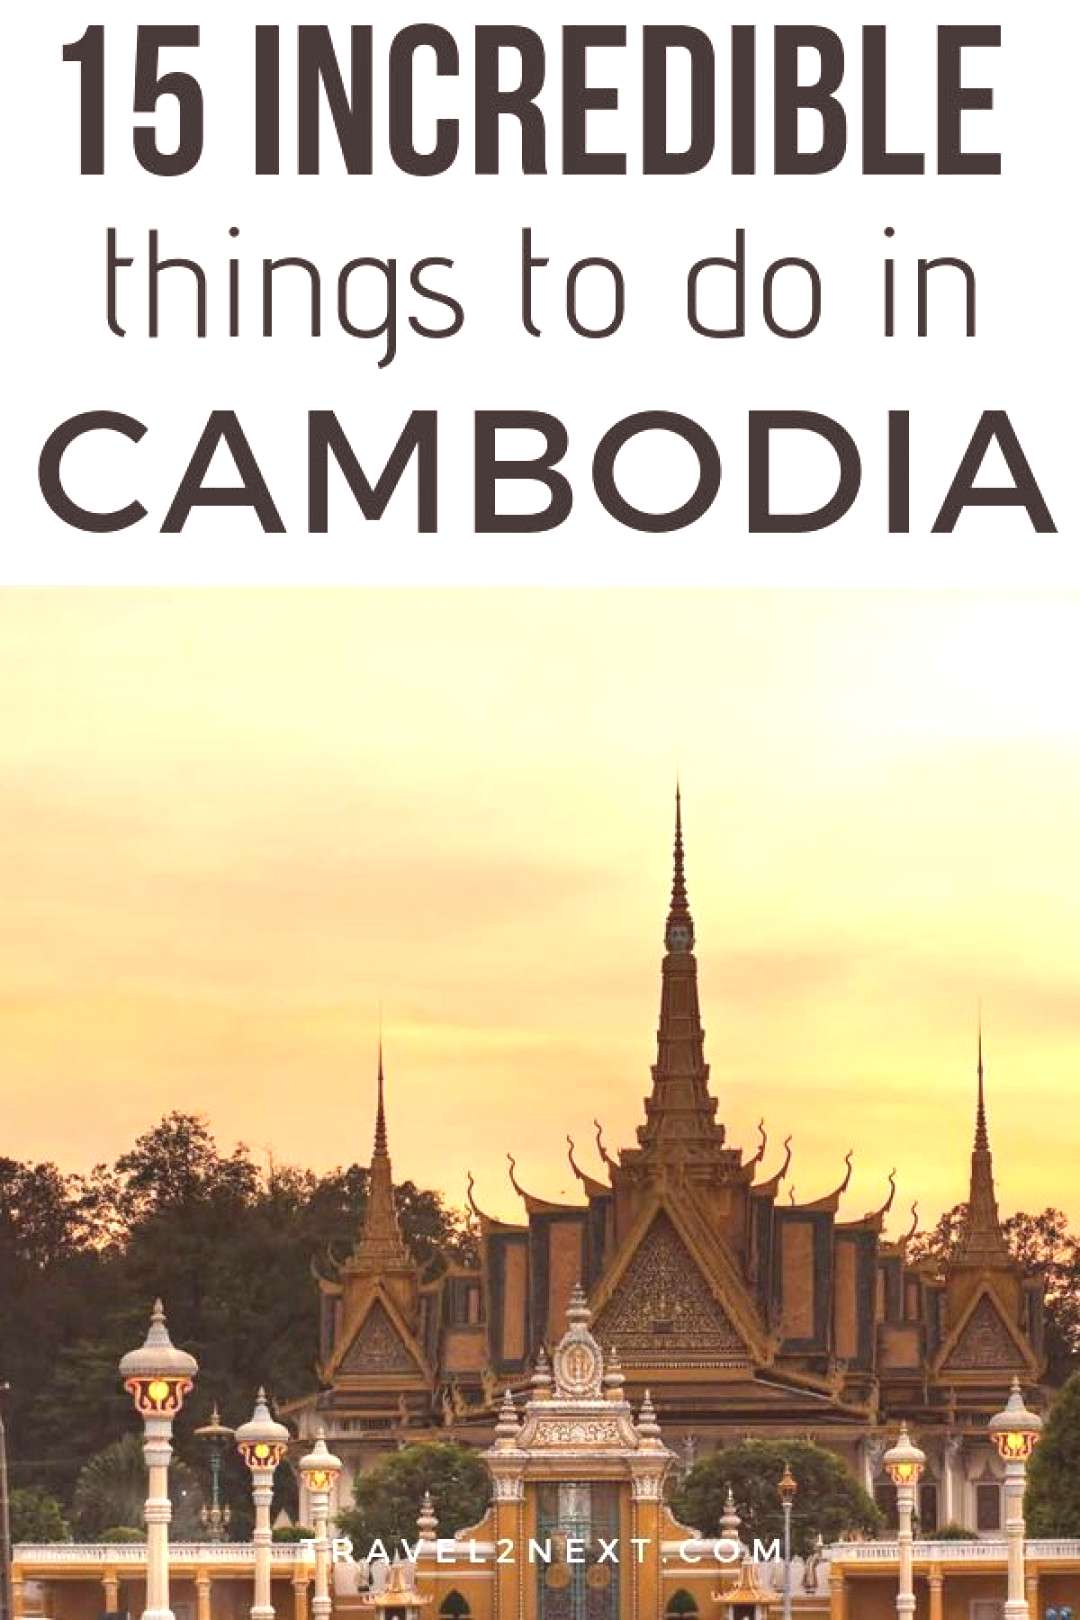 15 incredible things to do in Cambodia 15 incredible things to do in Cambodia. Exploring the Royal